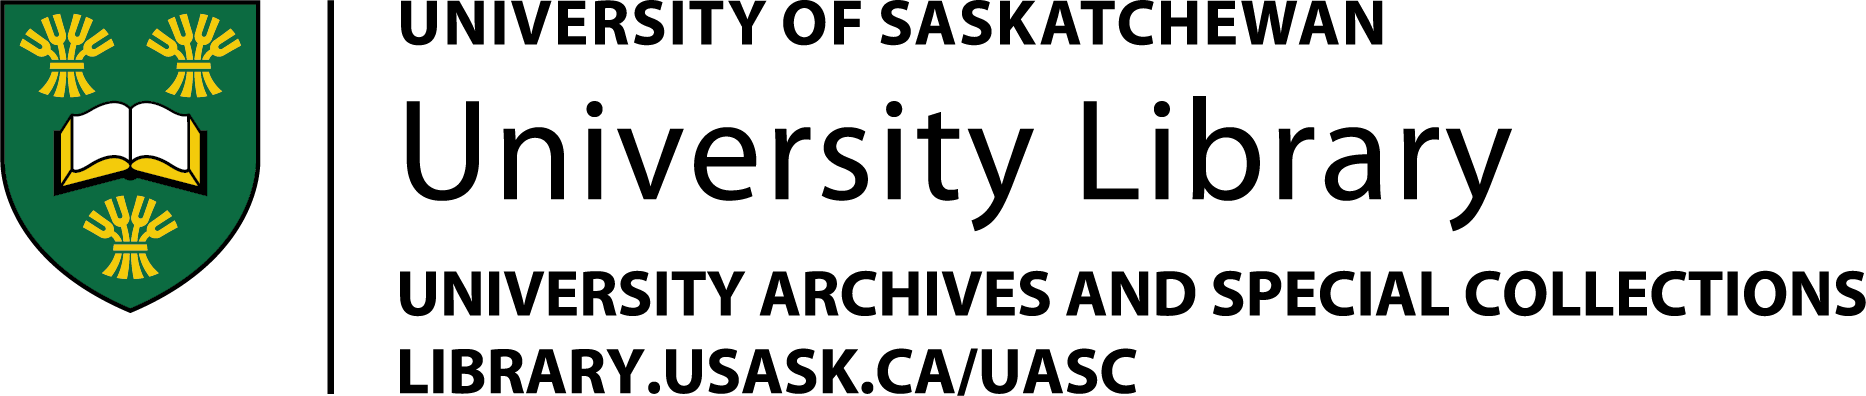 Go to University of Saskatchewan,...